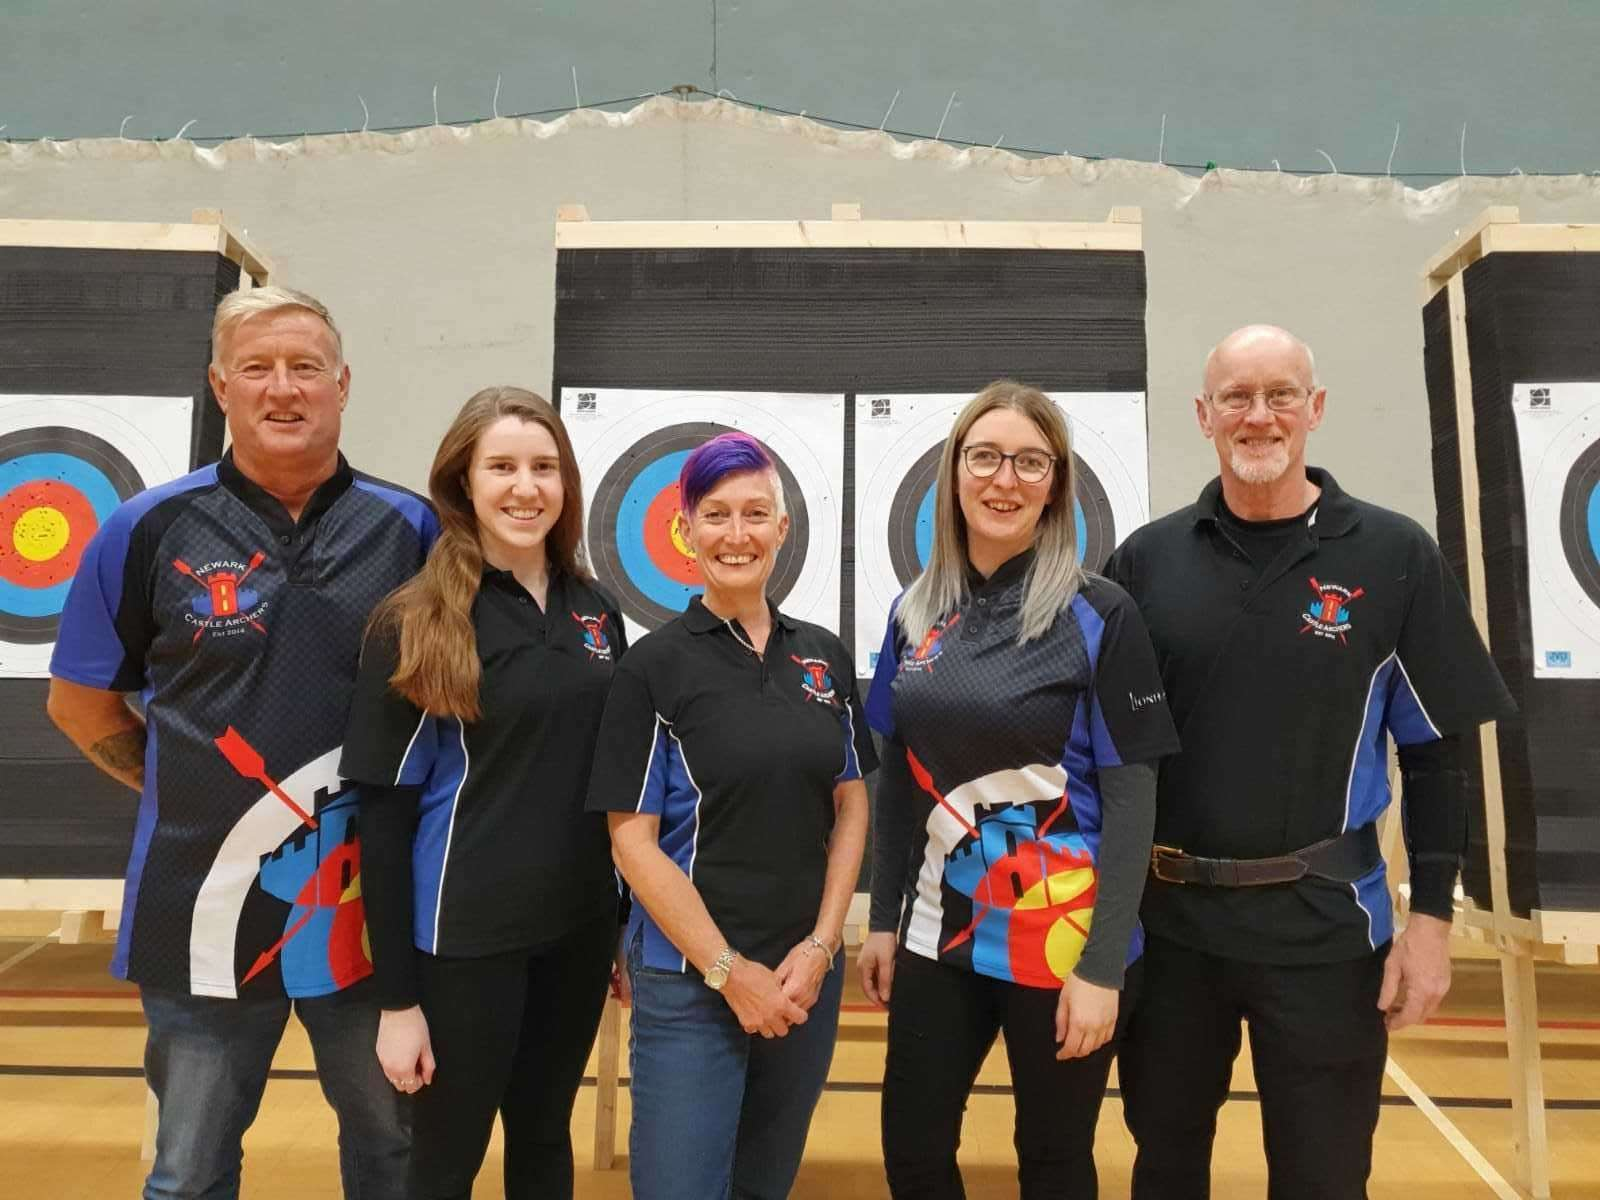 NEWARK Castle Archers' record-breakers are, from left to right, Steve Pepper (Longbow) Amy Barnes (recurve) Mandie Elson (barebow) Marti Voce (recurve) and Ian Pepper (recurve).